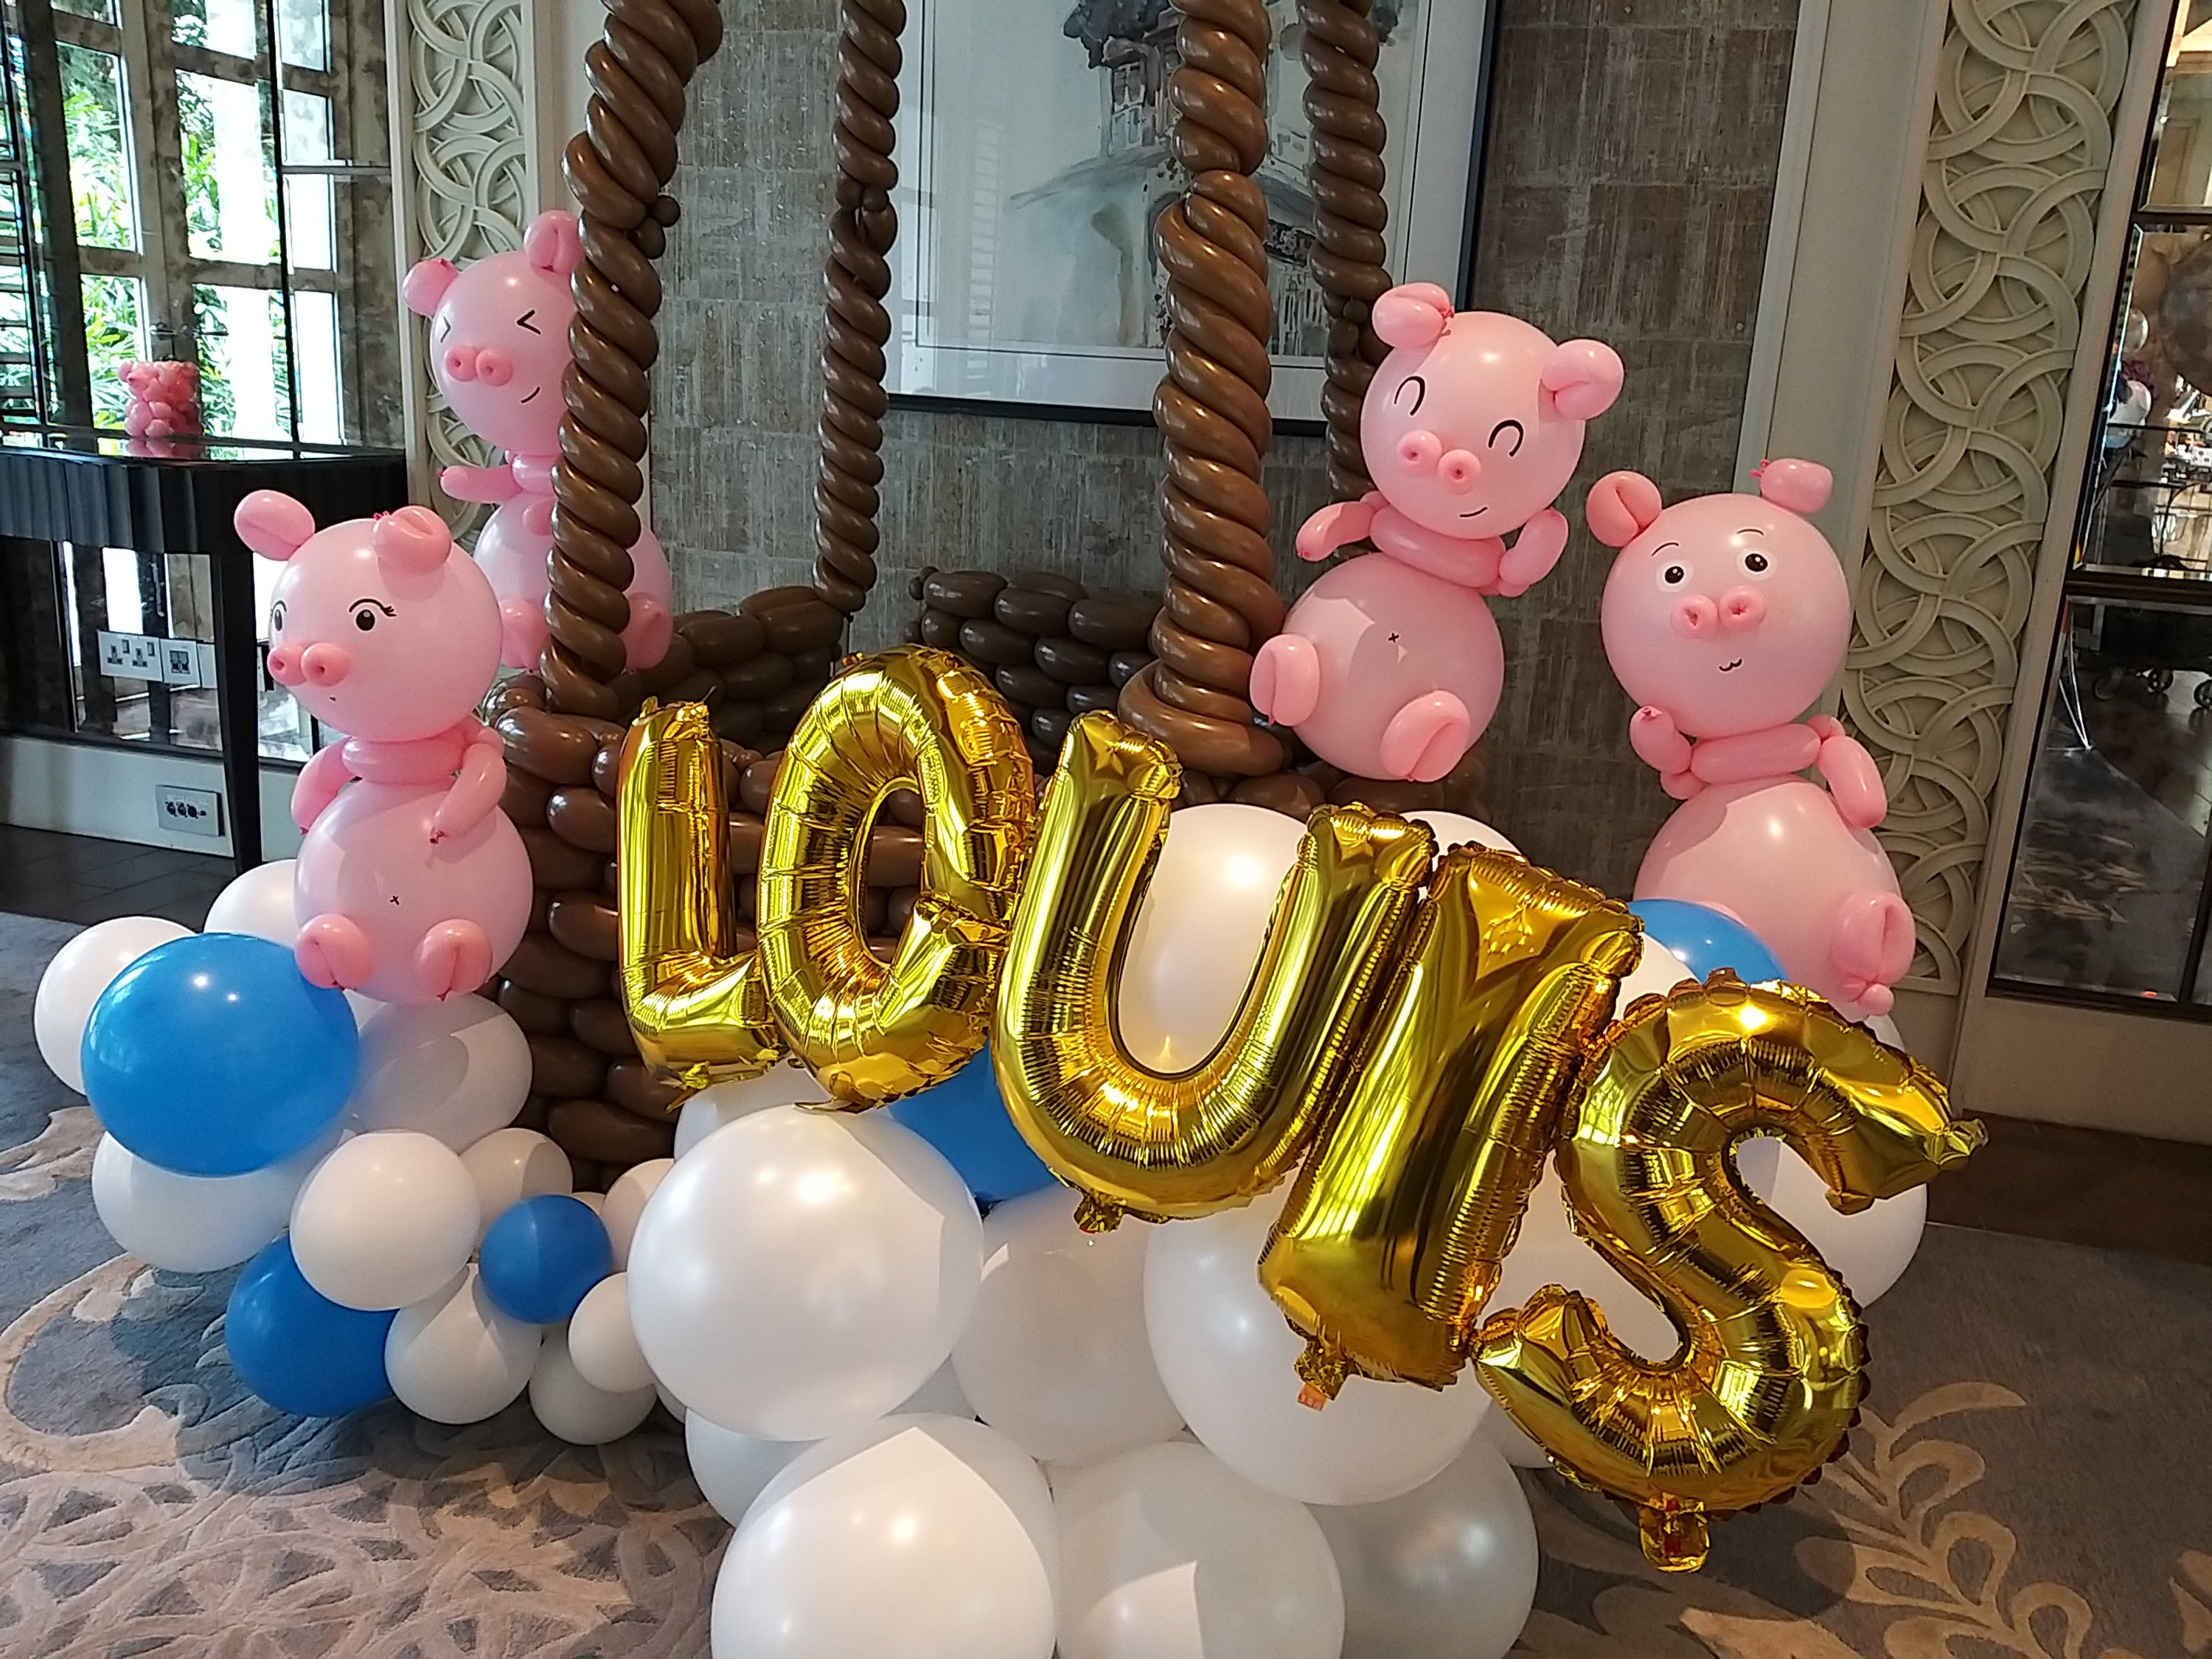 , Hot Air Balloon + Helium Balloon Decorations, Singapore Balloon Decoration Services - Balloon Workshop and Balloon Sculpting